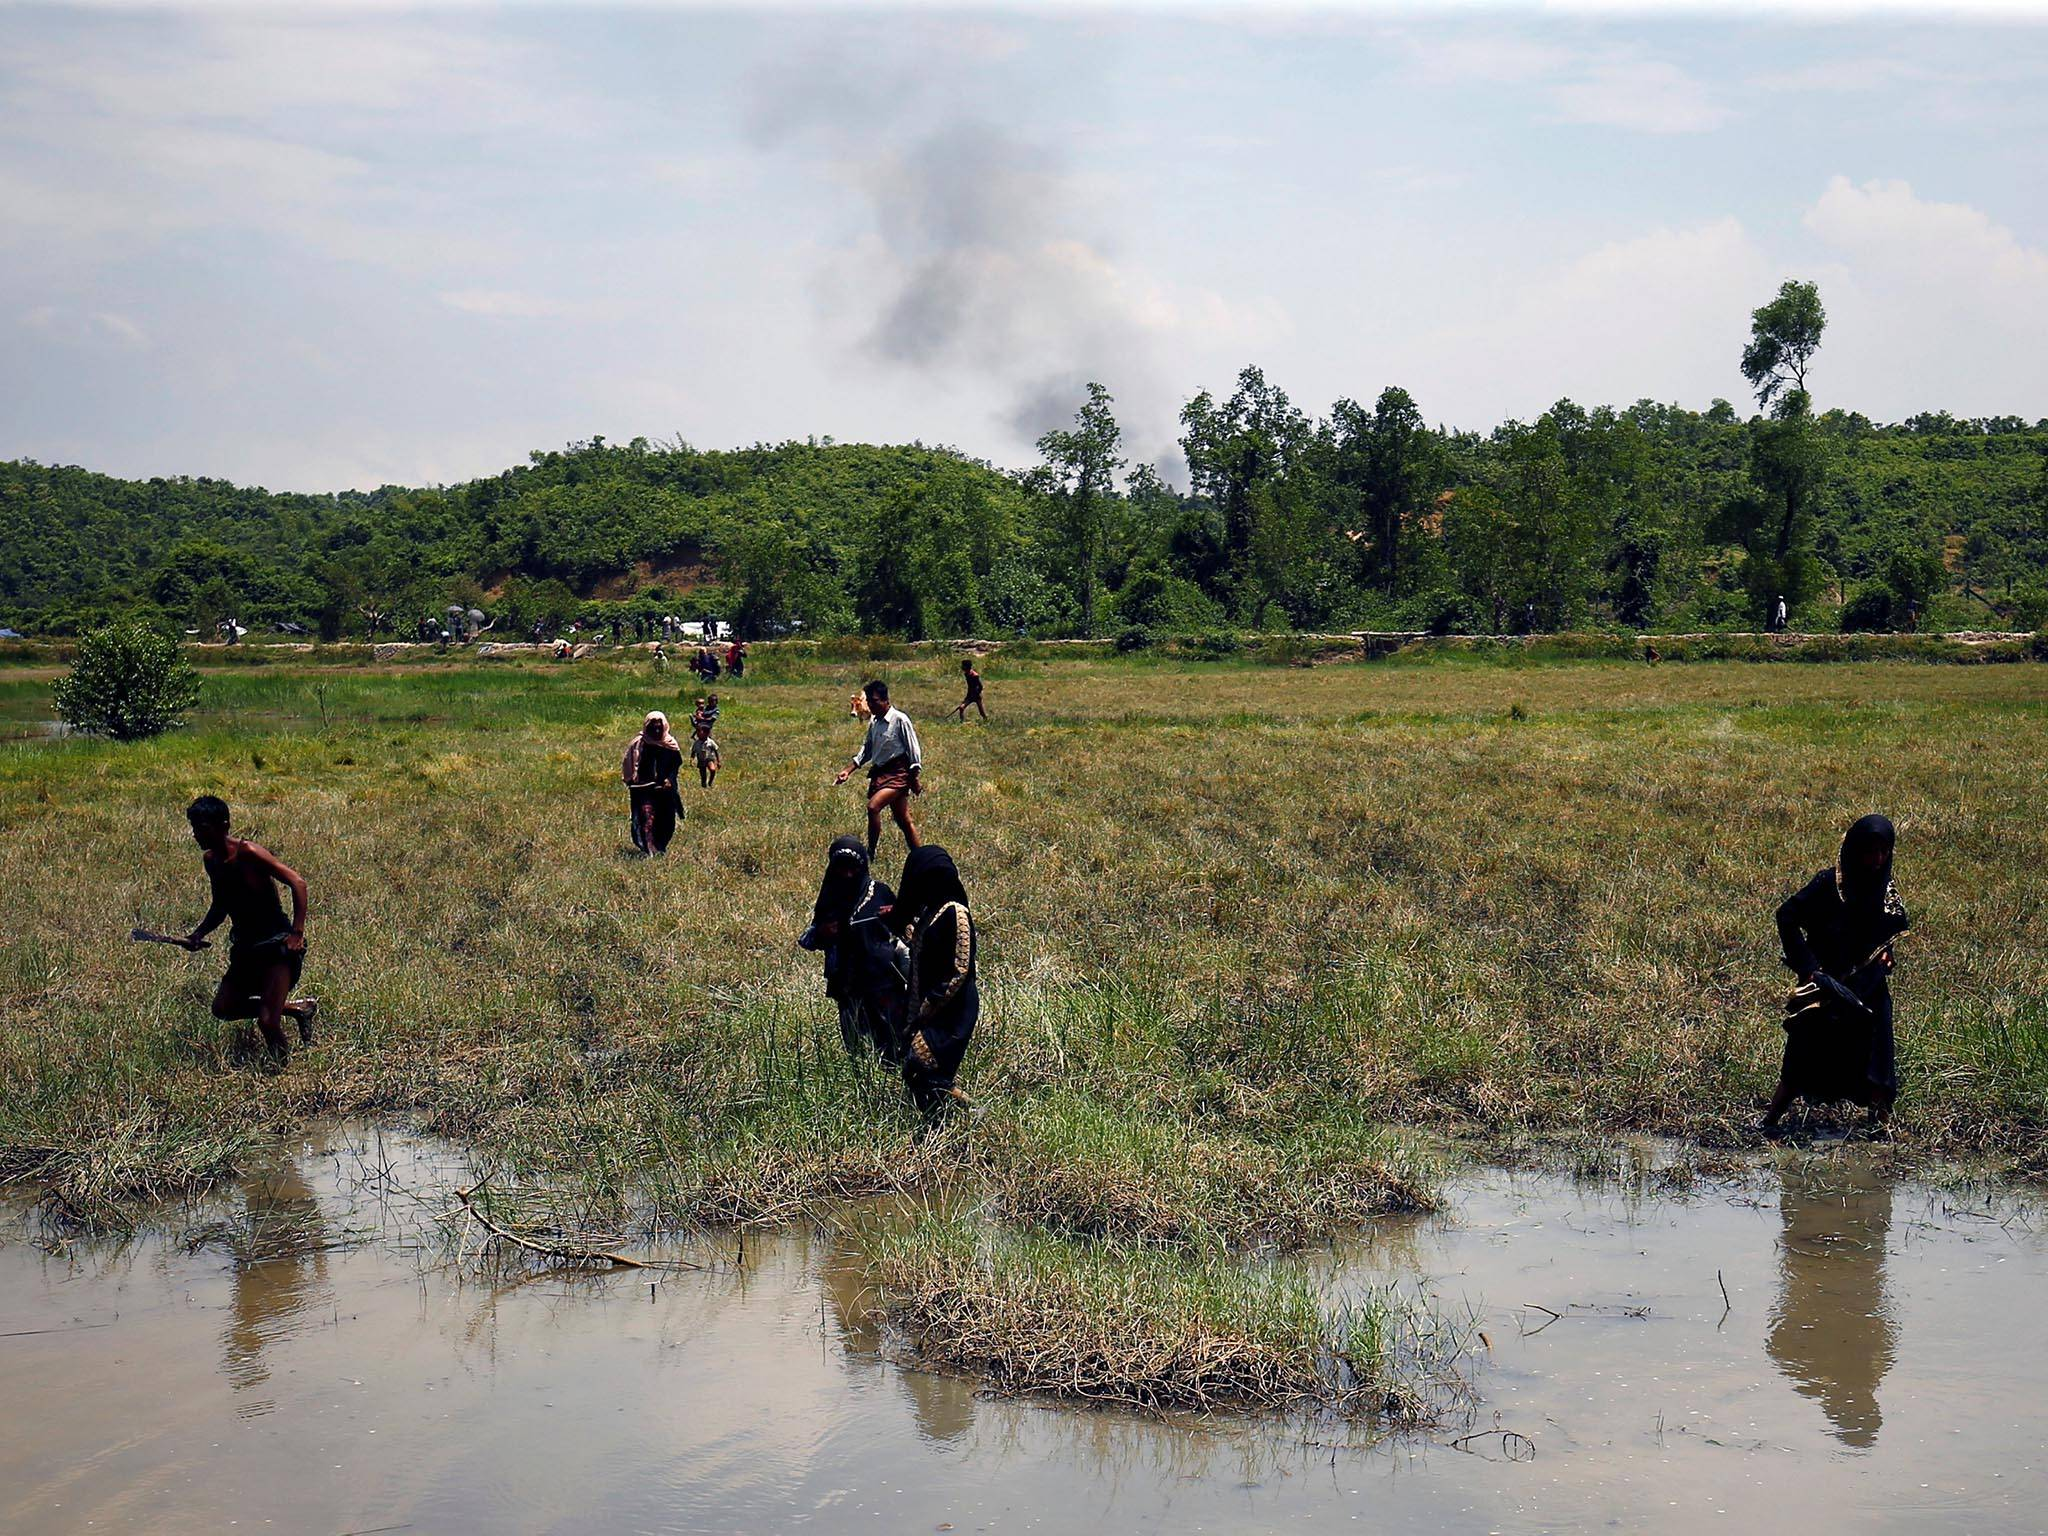 Burma: More than 100 Rohingya Muslims massacred in Rakhine state